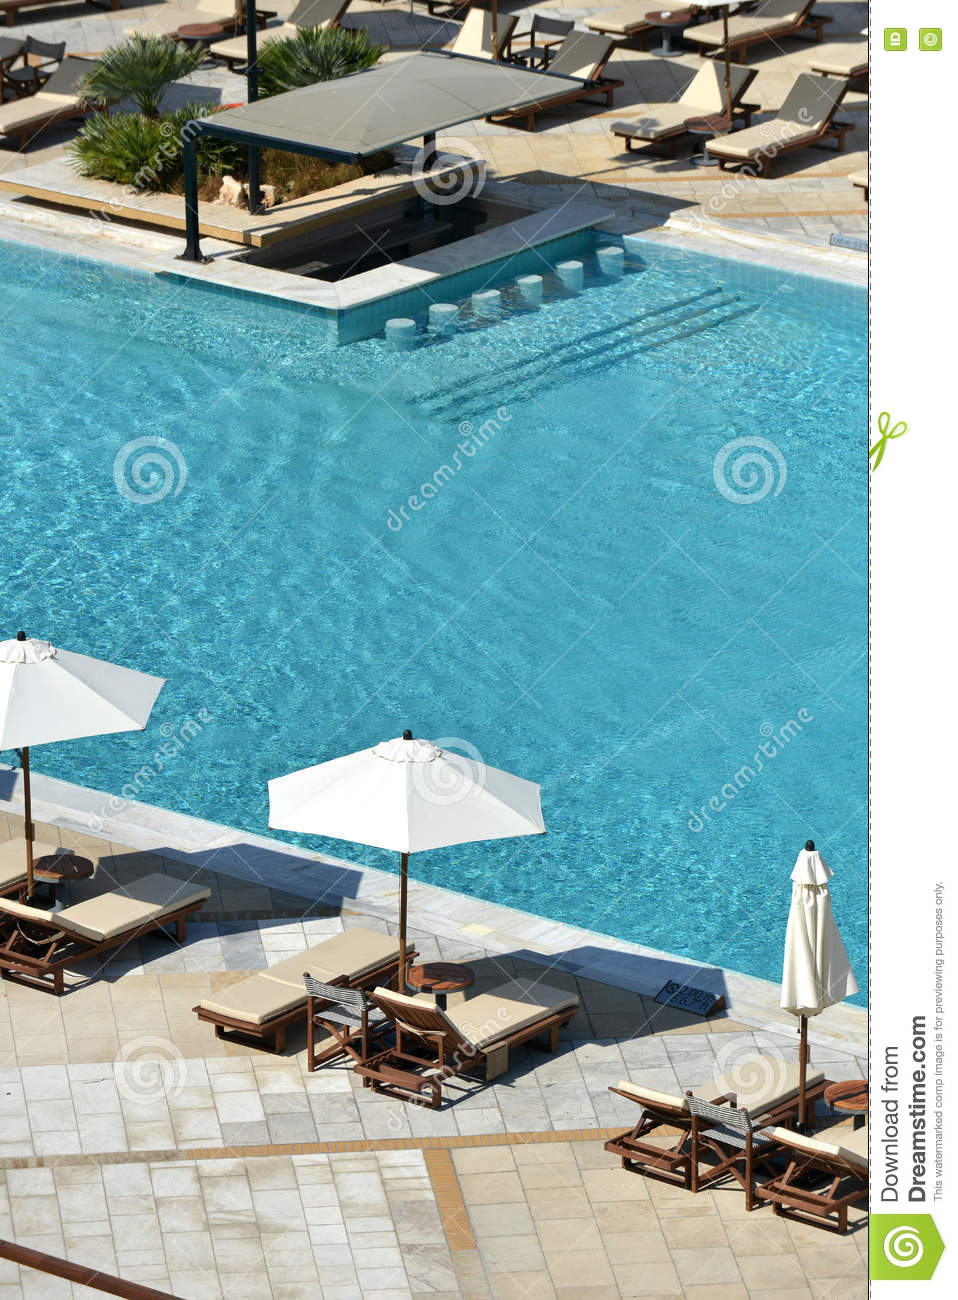 Loungers And Pool Stock Image Image Of Umbrella Ripple 79974307